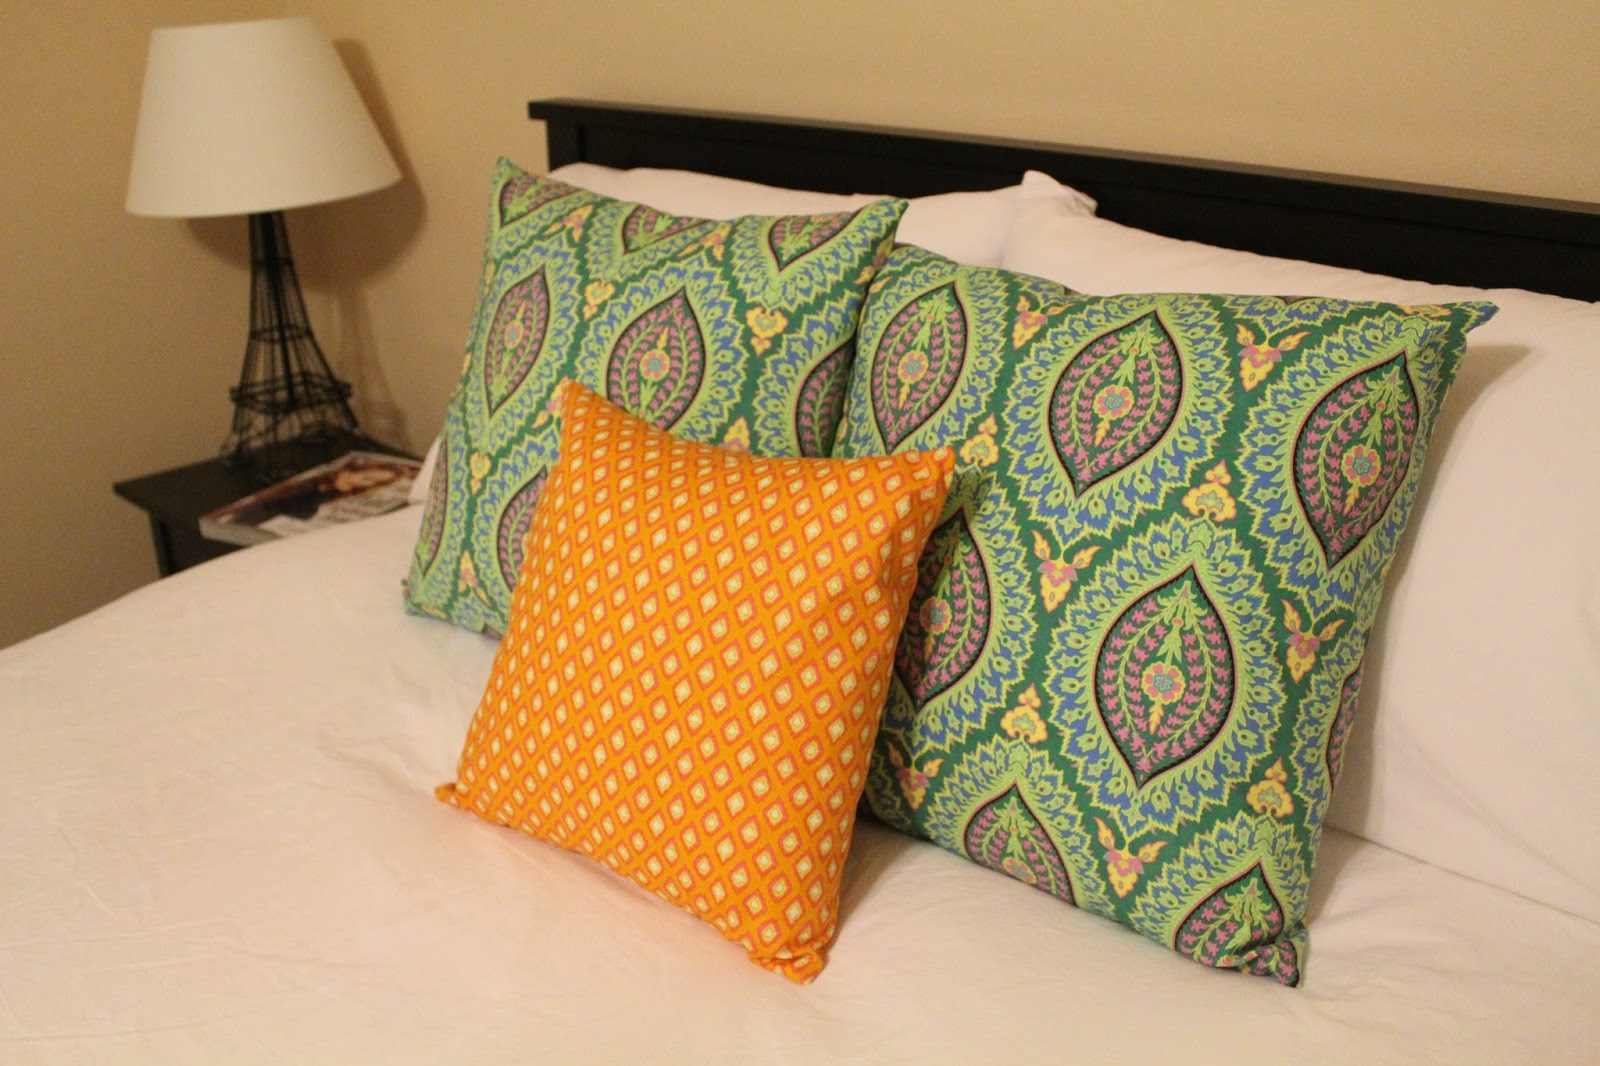 Diy Round Throw Pillows : Miss Allie Jane: DIY Throw Pillows